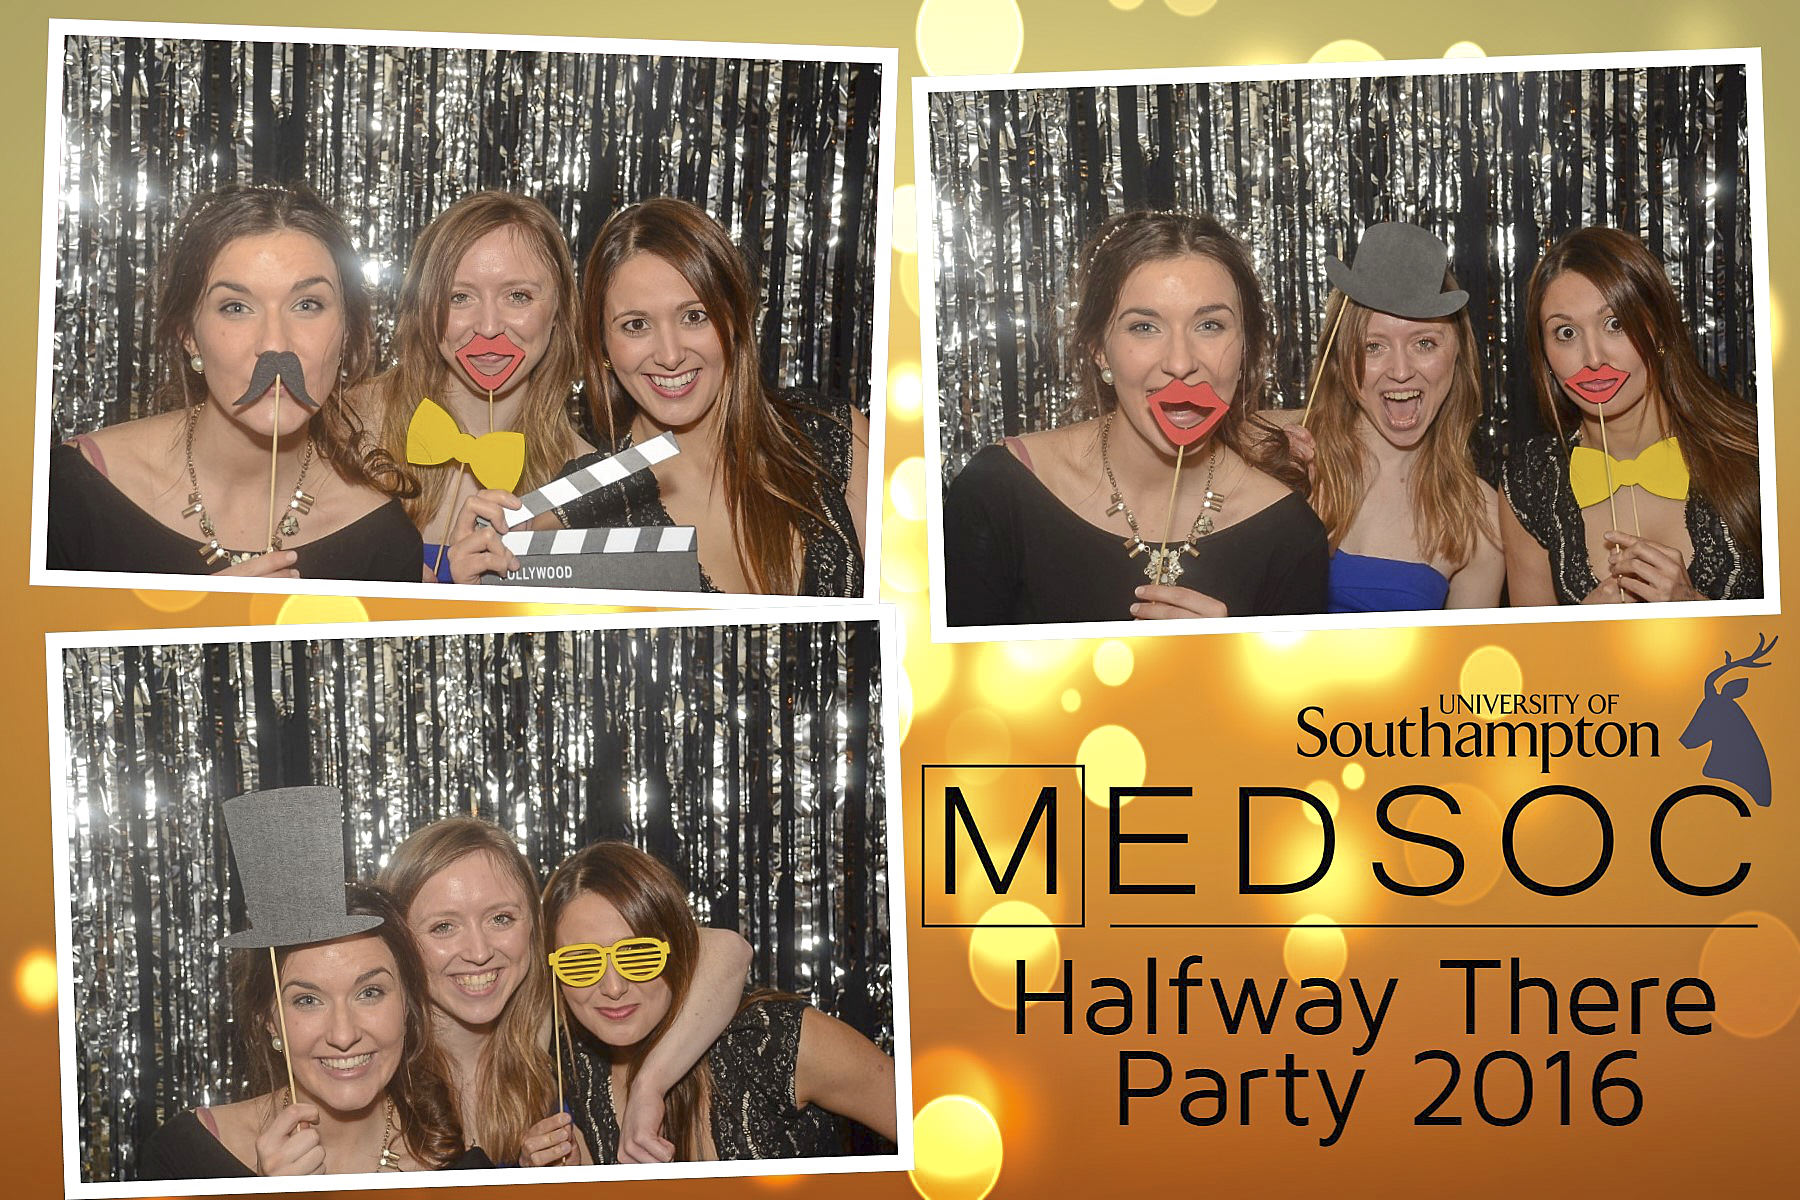 MedSoc Halfway There Party 2016 DS223509.jpg